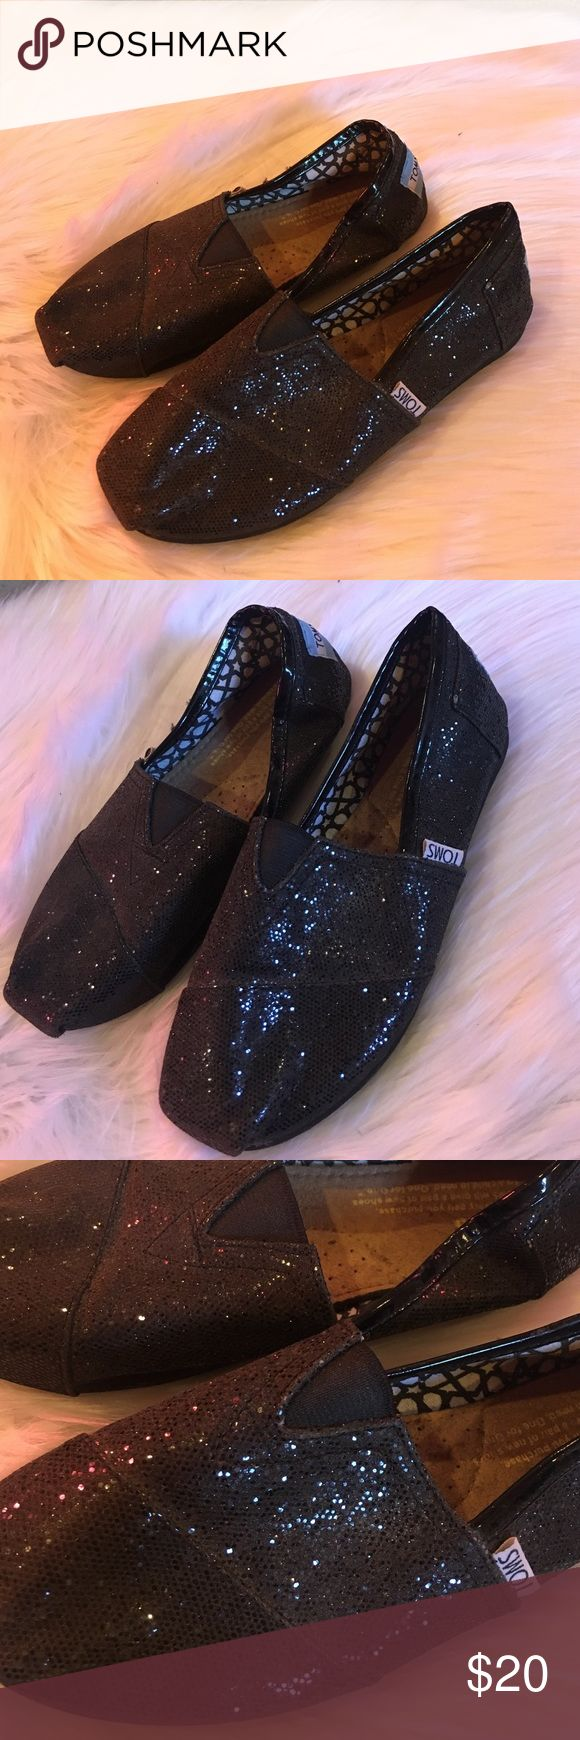 Black glitz toms size 6 Black glitter toms size 6 some wear see pictures...check my other listings for bundle deals TOMS Shoes Flats & Loafers